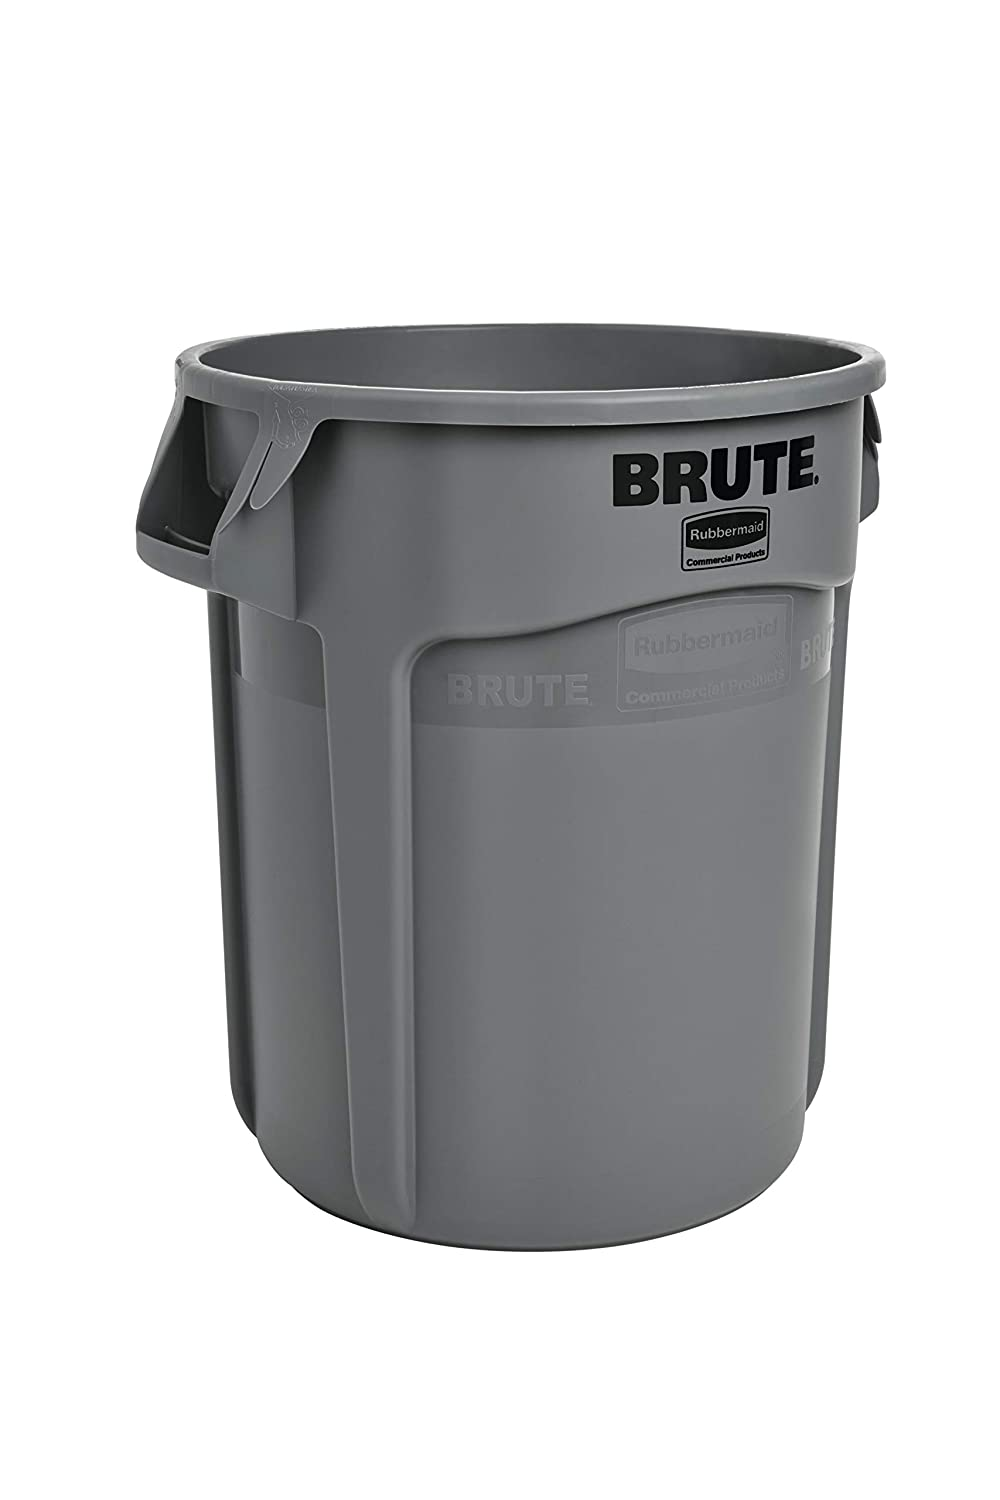 Rubbermaid Commercial Products FG262000GRAY BRUTE Heavy-Duty Round Trash/Garbage Can, 20-Gallon, Gray